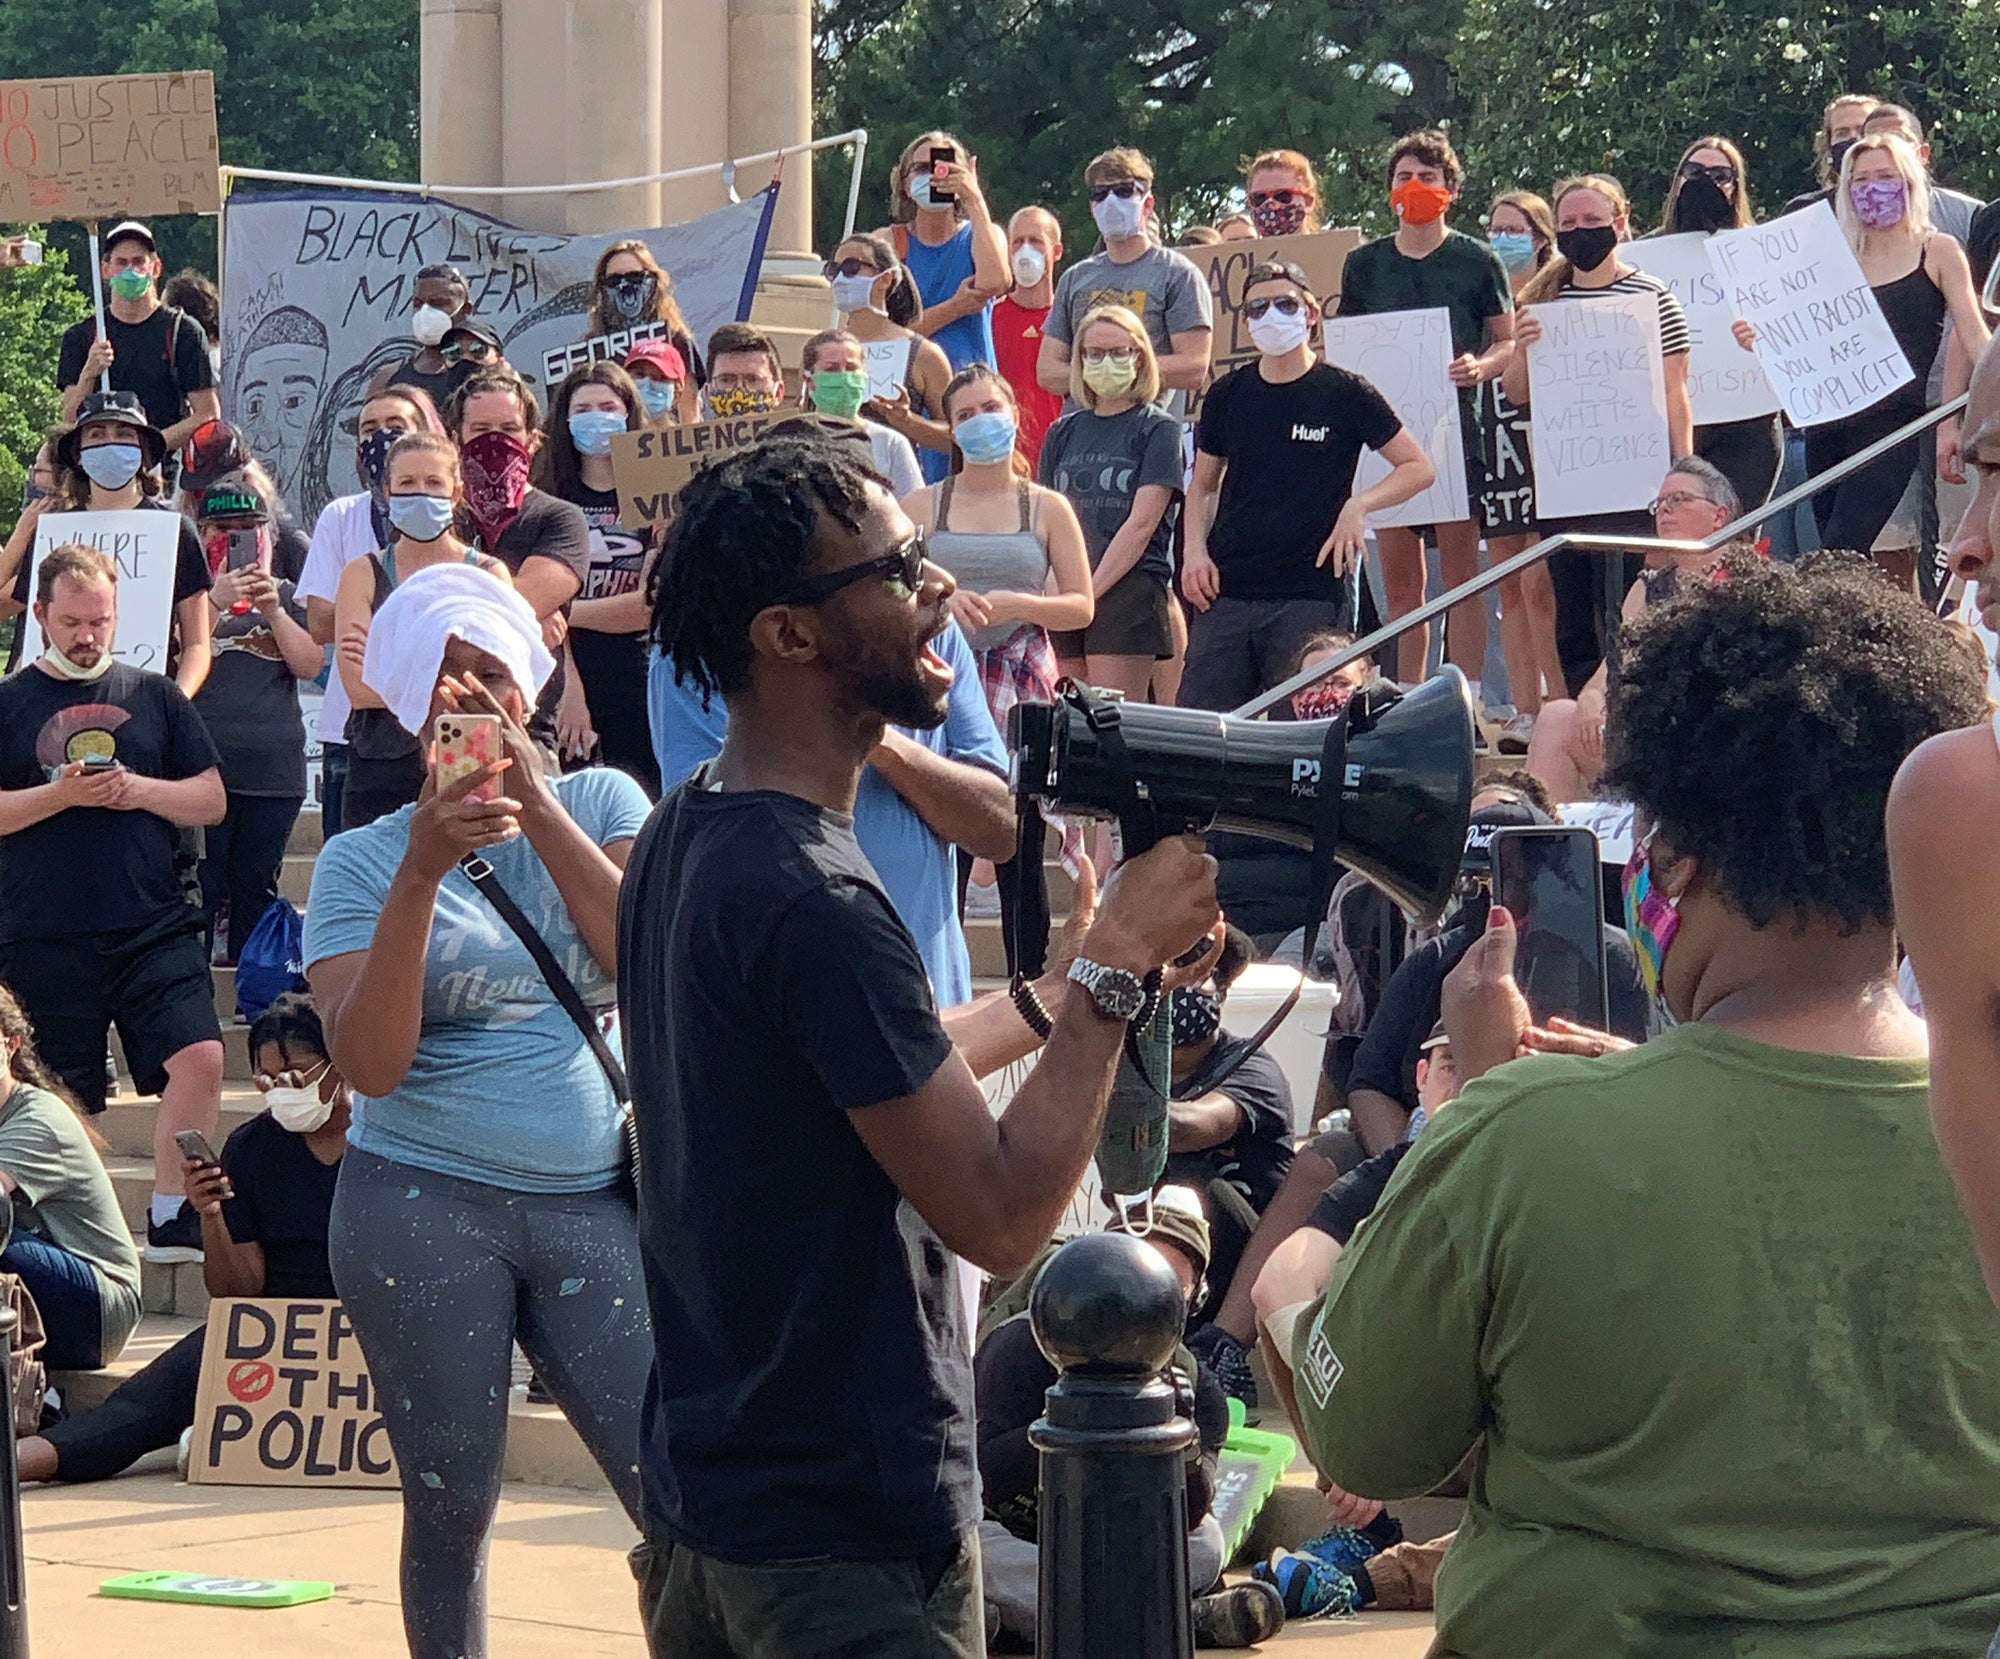 Shakur with a megaphone at a Little Rock rally against police violence